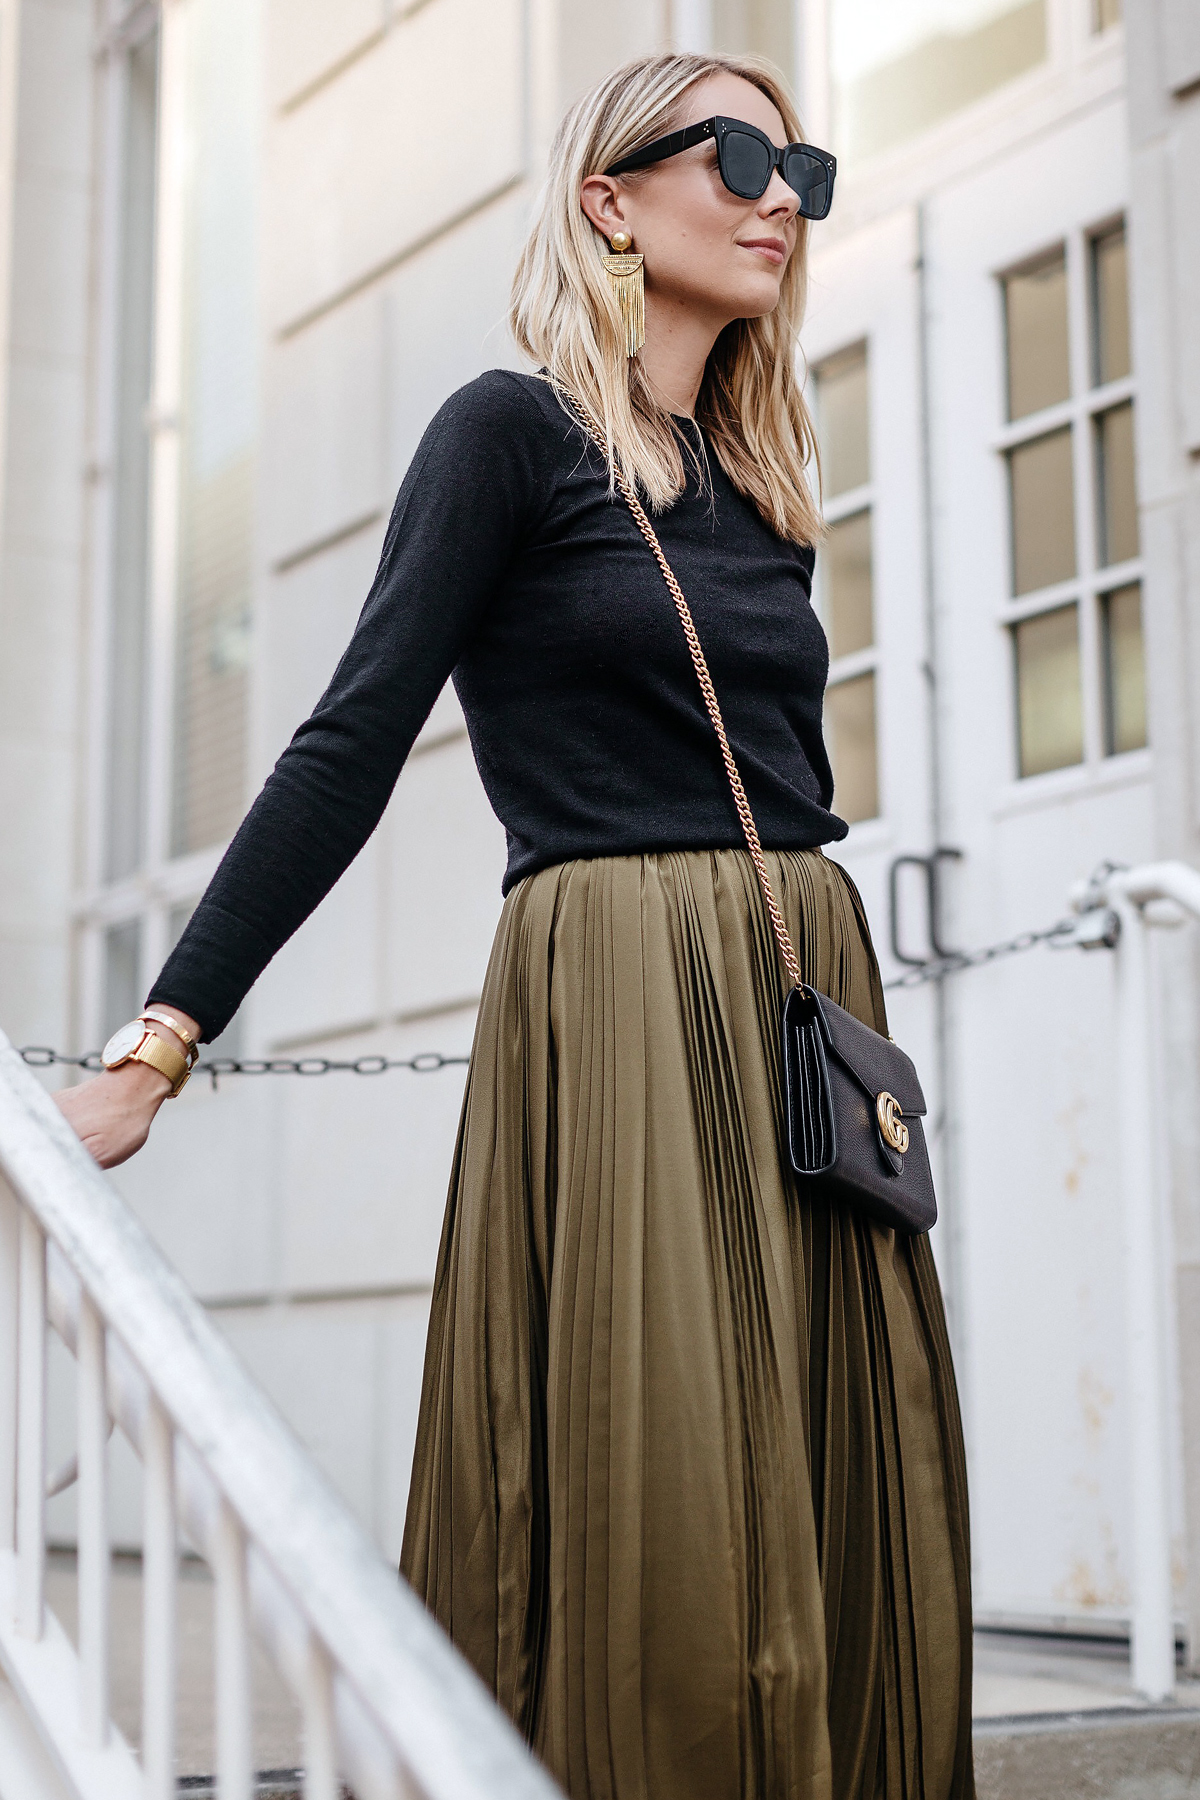 Blonde Woman Wearing Black Sweater Robert Rodriguez Green Pleated Midi Skirt Gucci Marmont Handbag Fashion Jackson Dallas Blogger Fashion Blogger Street Style